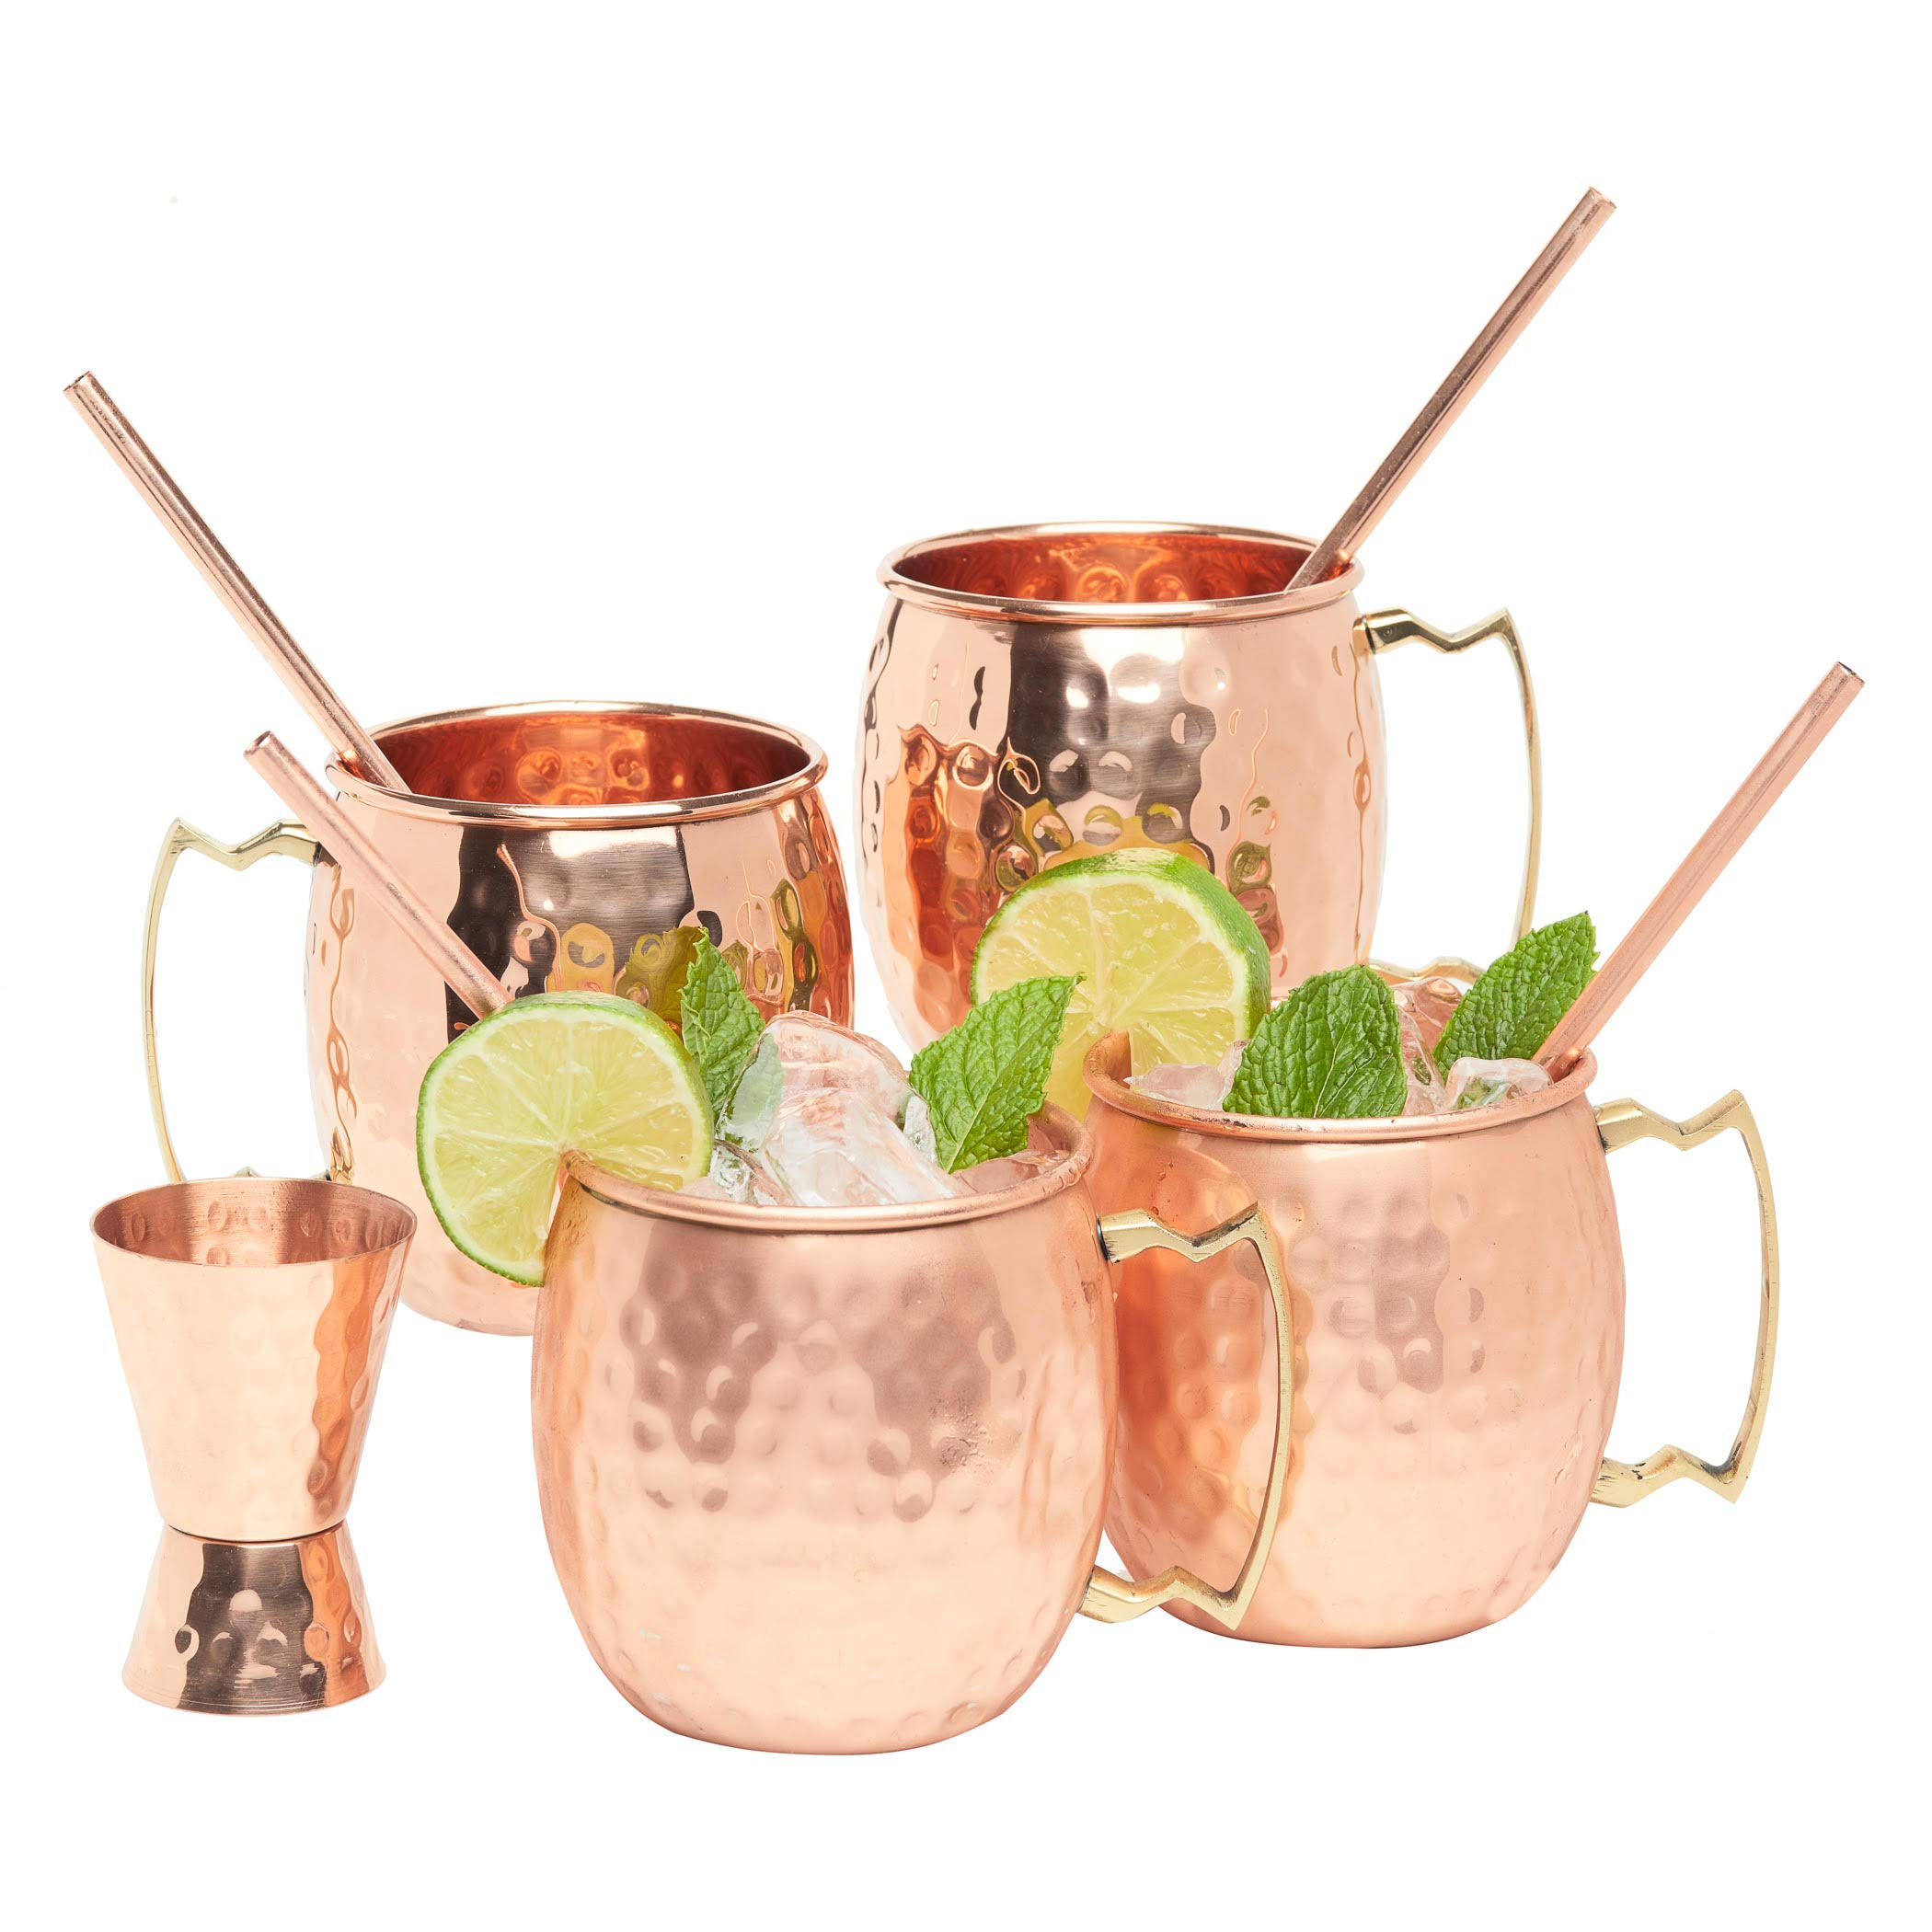 Kitchen Science Moscow Mule Hammered Copper 16 Ounce Drinking Mug, Set of 4 (4) (4) by Kitchen Science (Image #1)